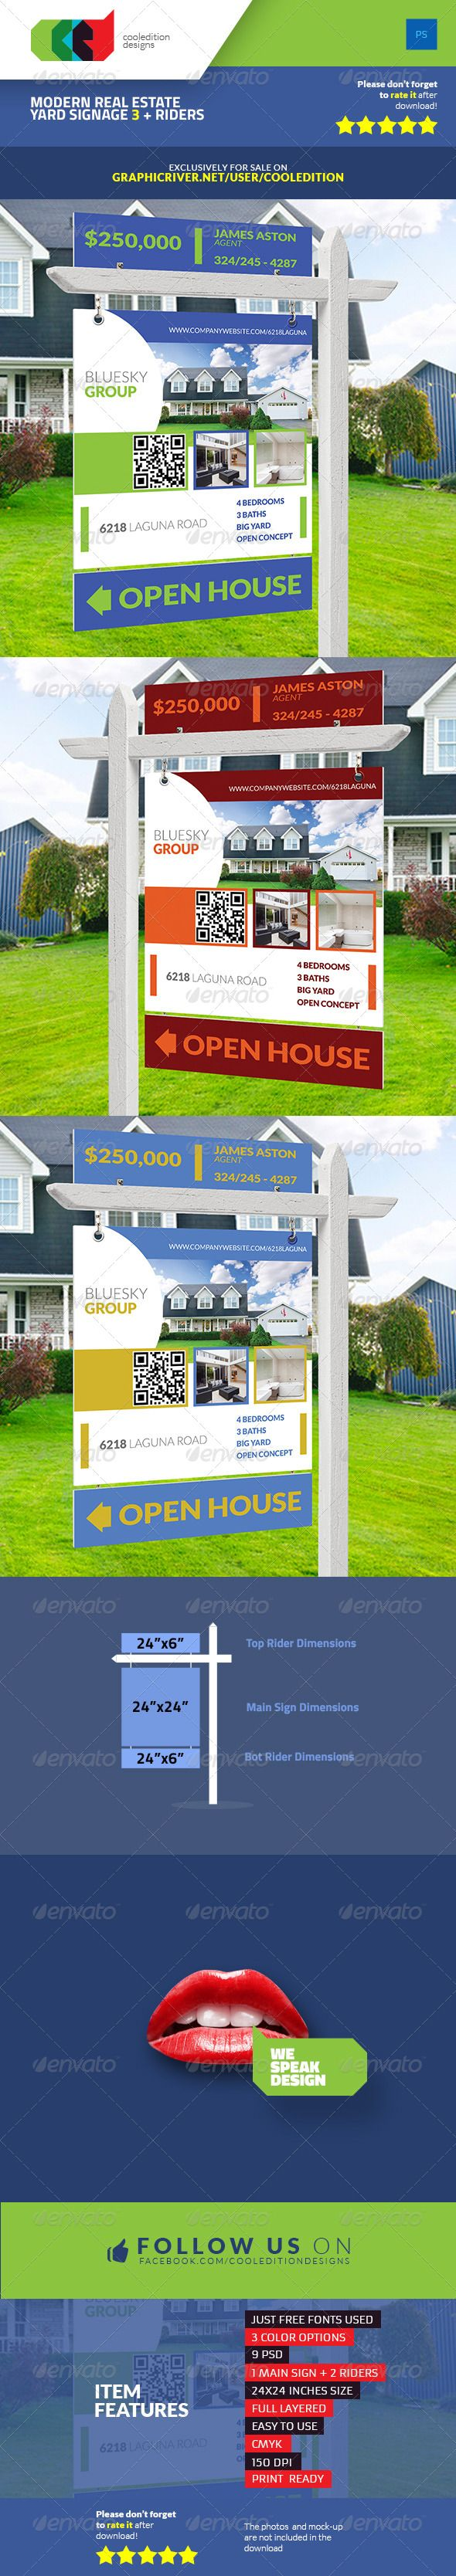 1000 images about Real Estate Signage Design – House for Sale Sign Template